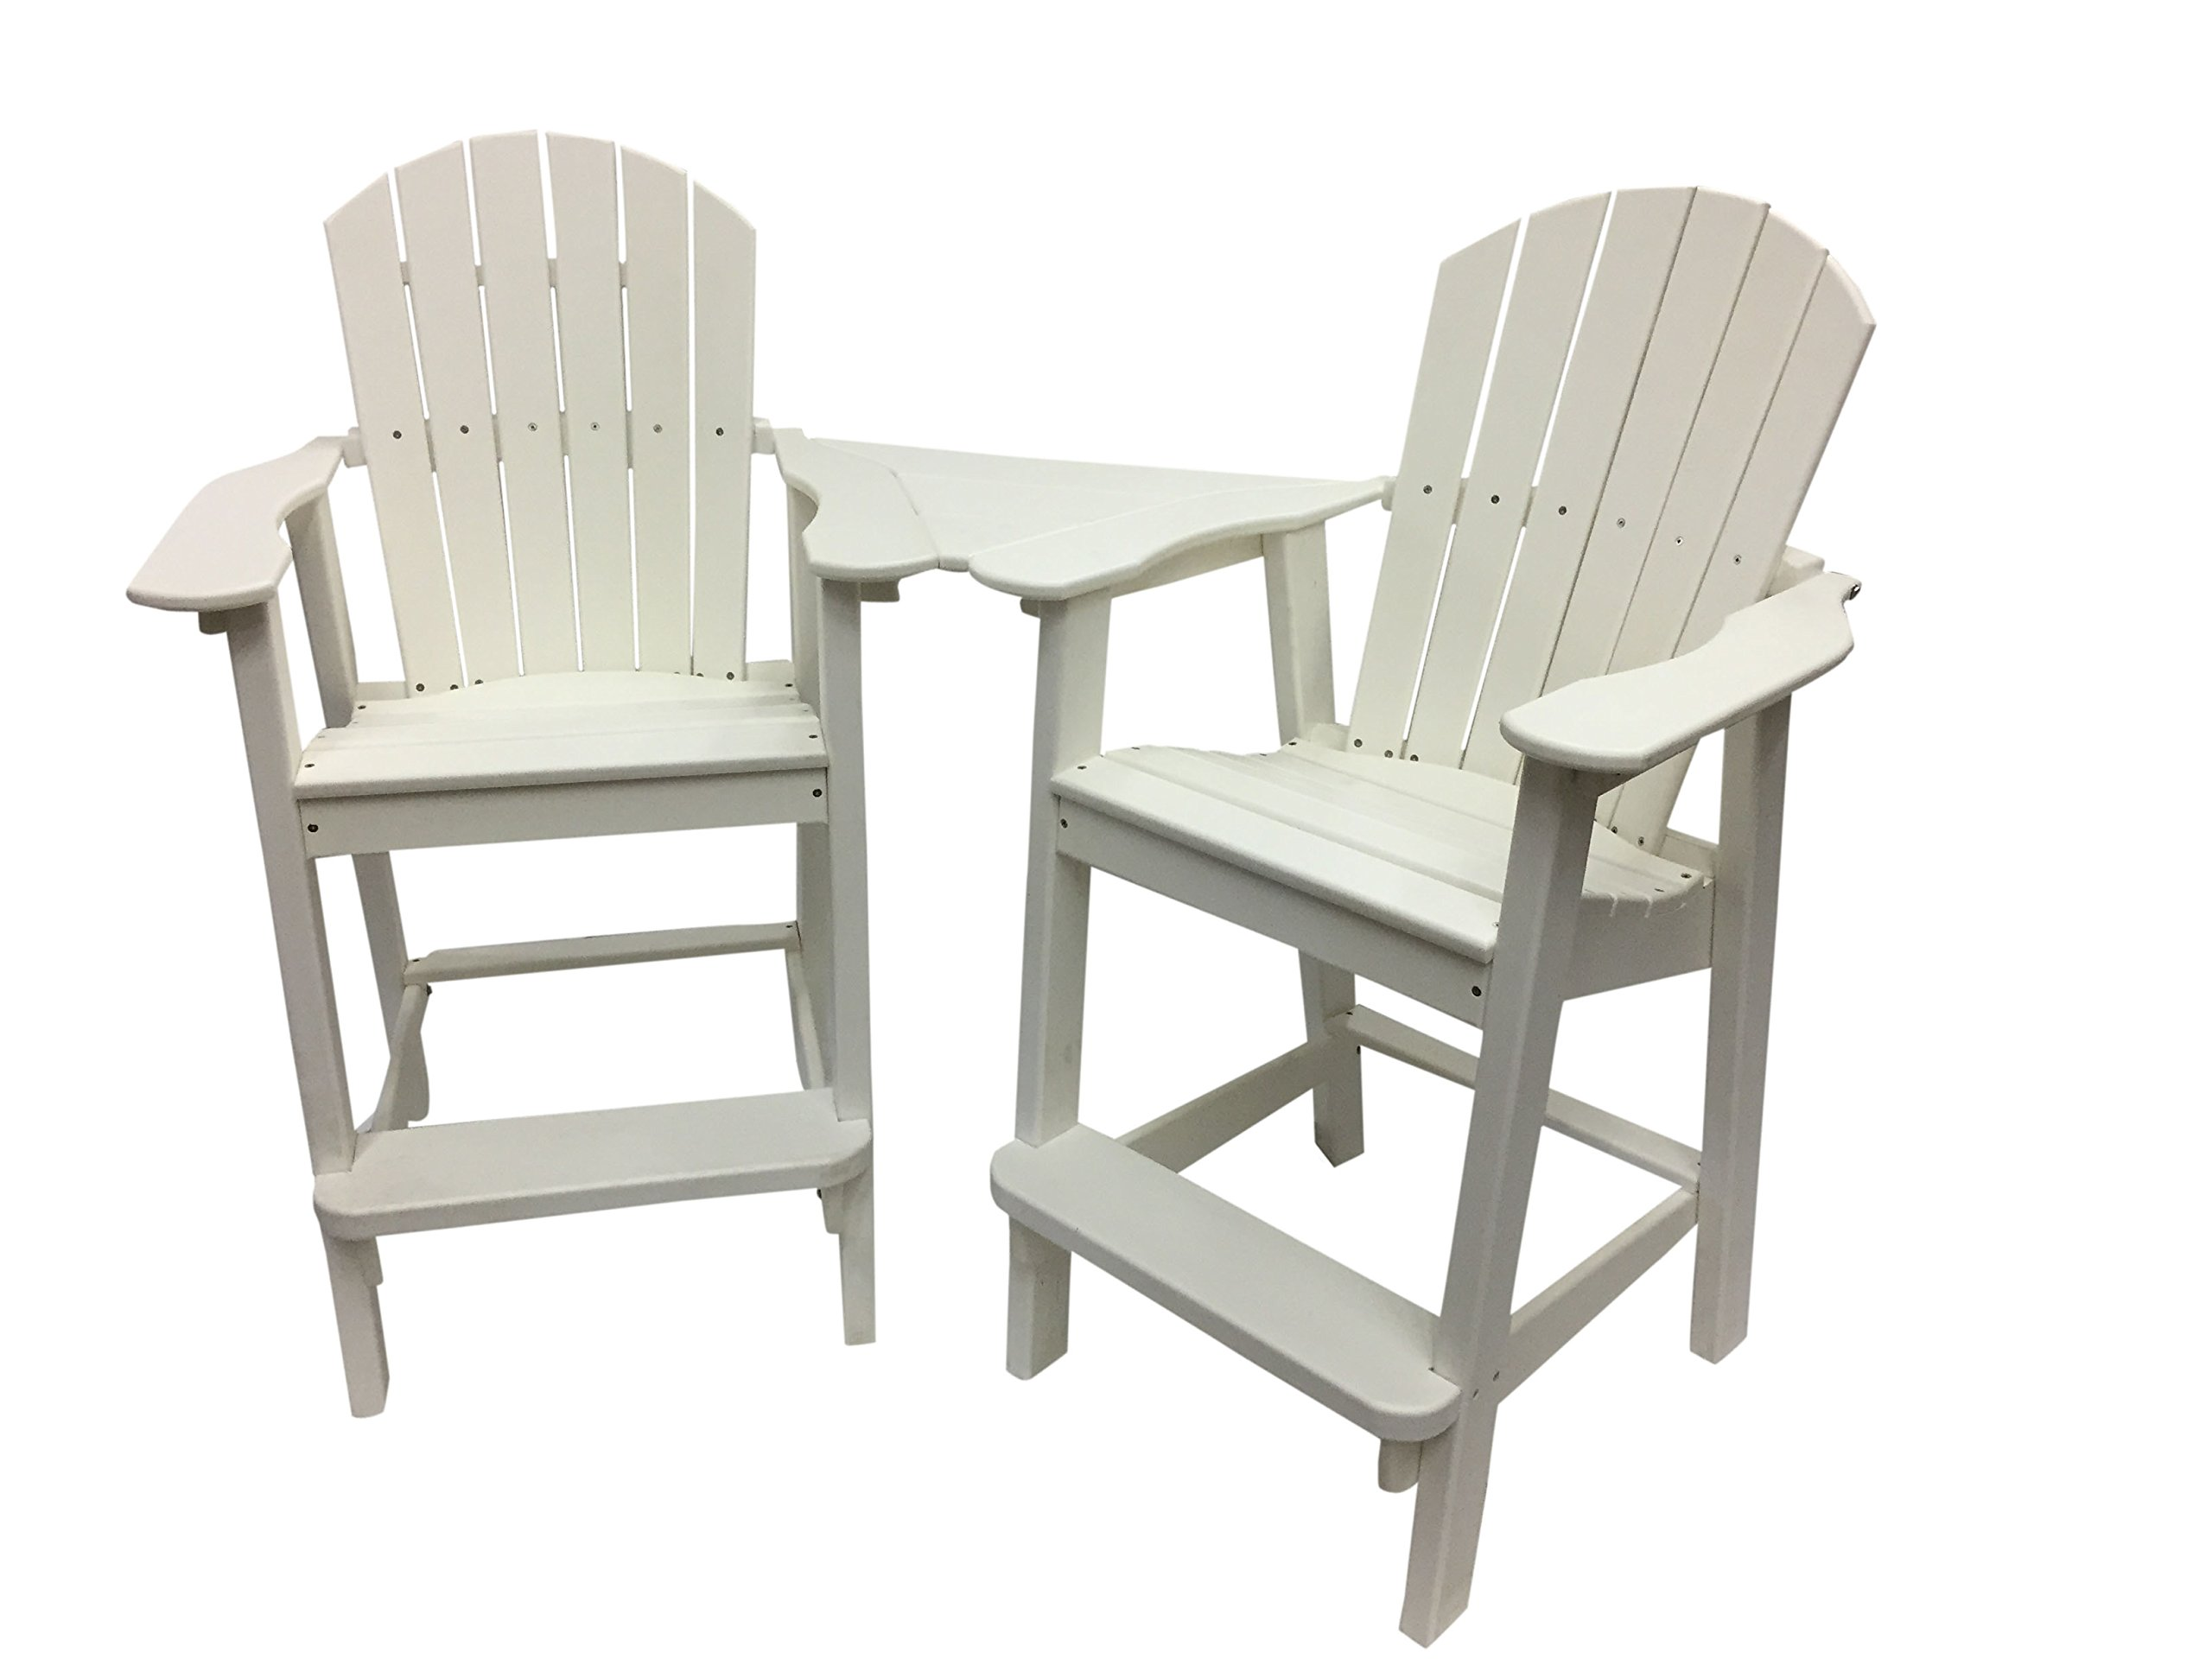 Amazon com phat tommy recycled poly resin balcony chair settee durable and adirondack patio furniture white garden outdoor